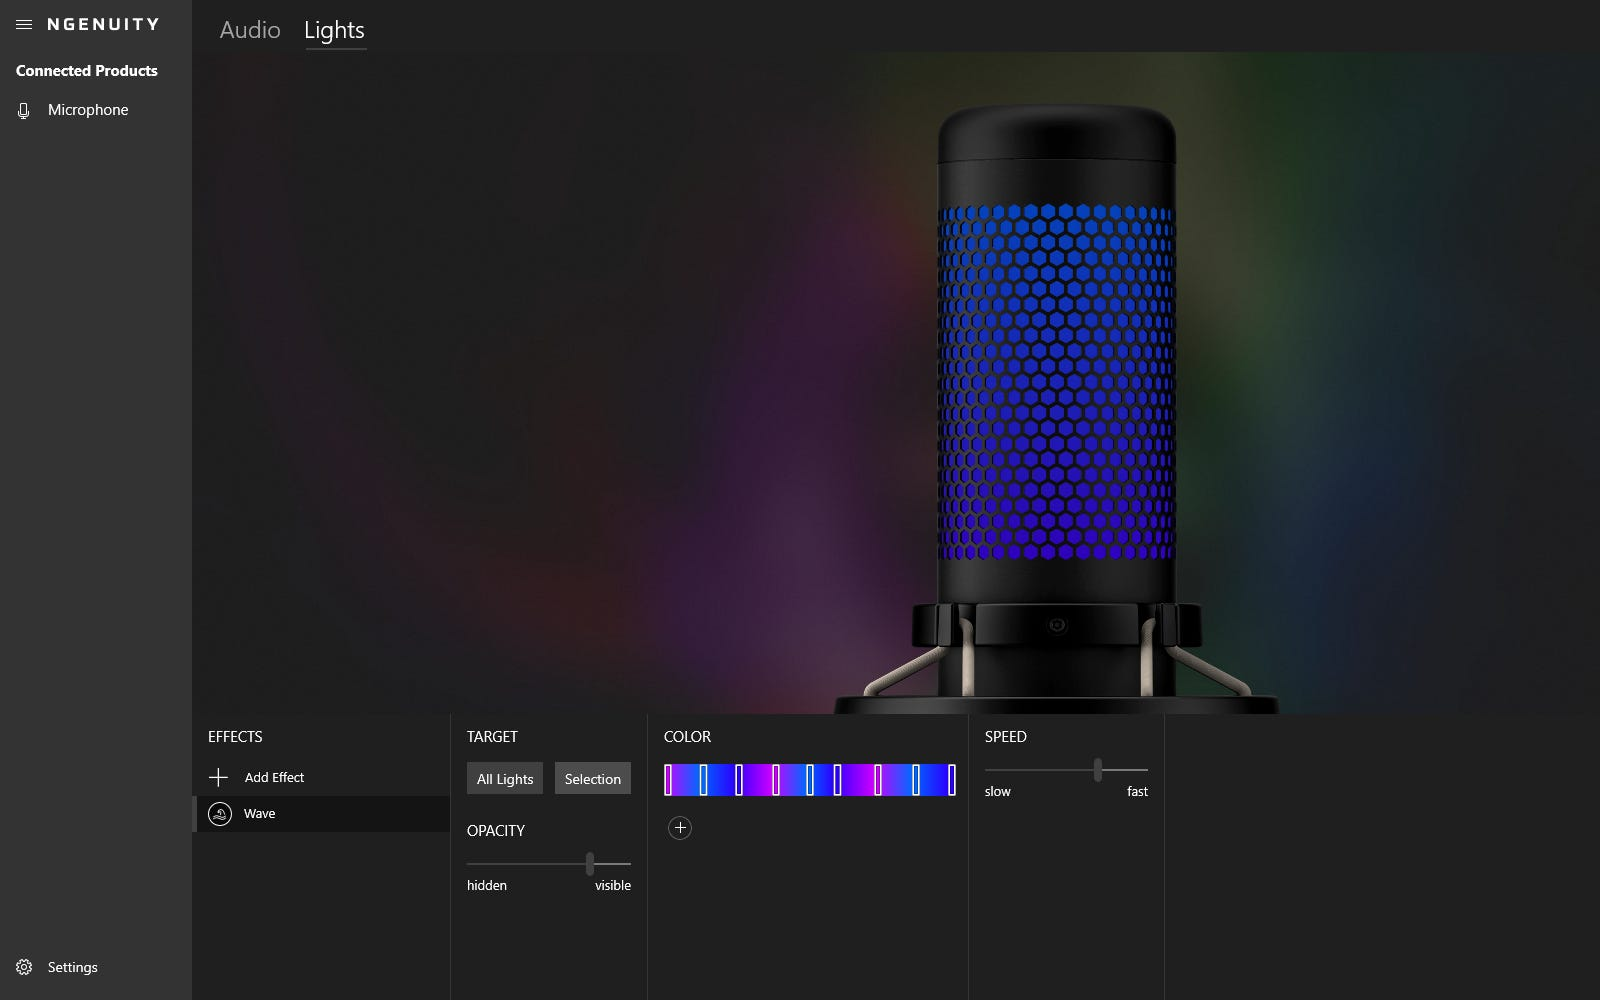 Lighting options for the QuadCast S in HyperX NGENUITY